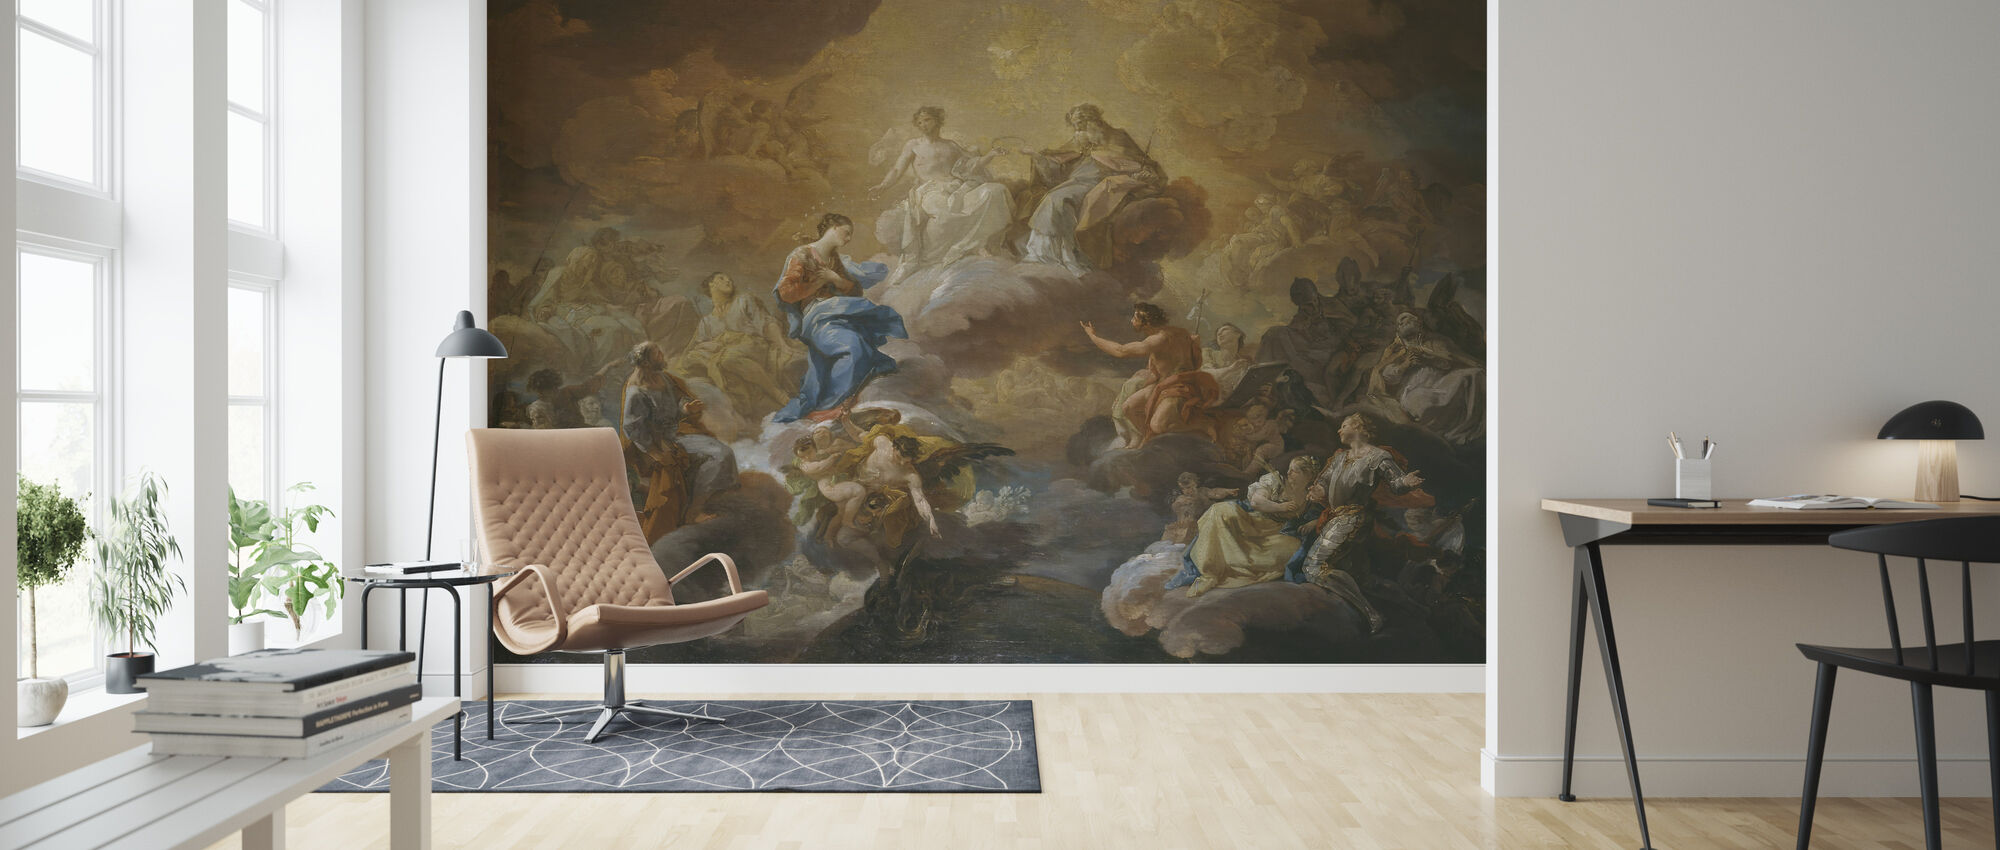 Holy Trinity - Corrado Giaquinto - Wallpaper - Living Room